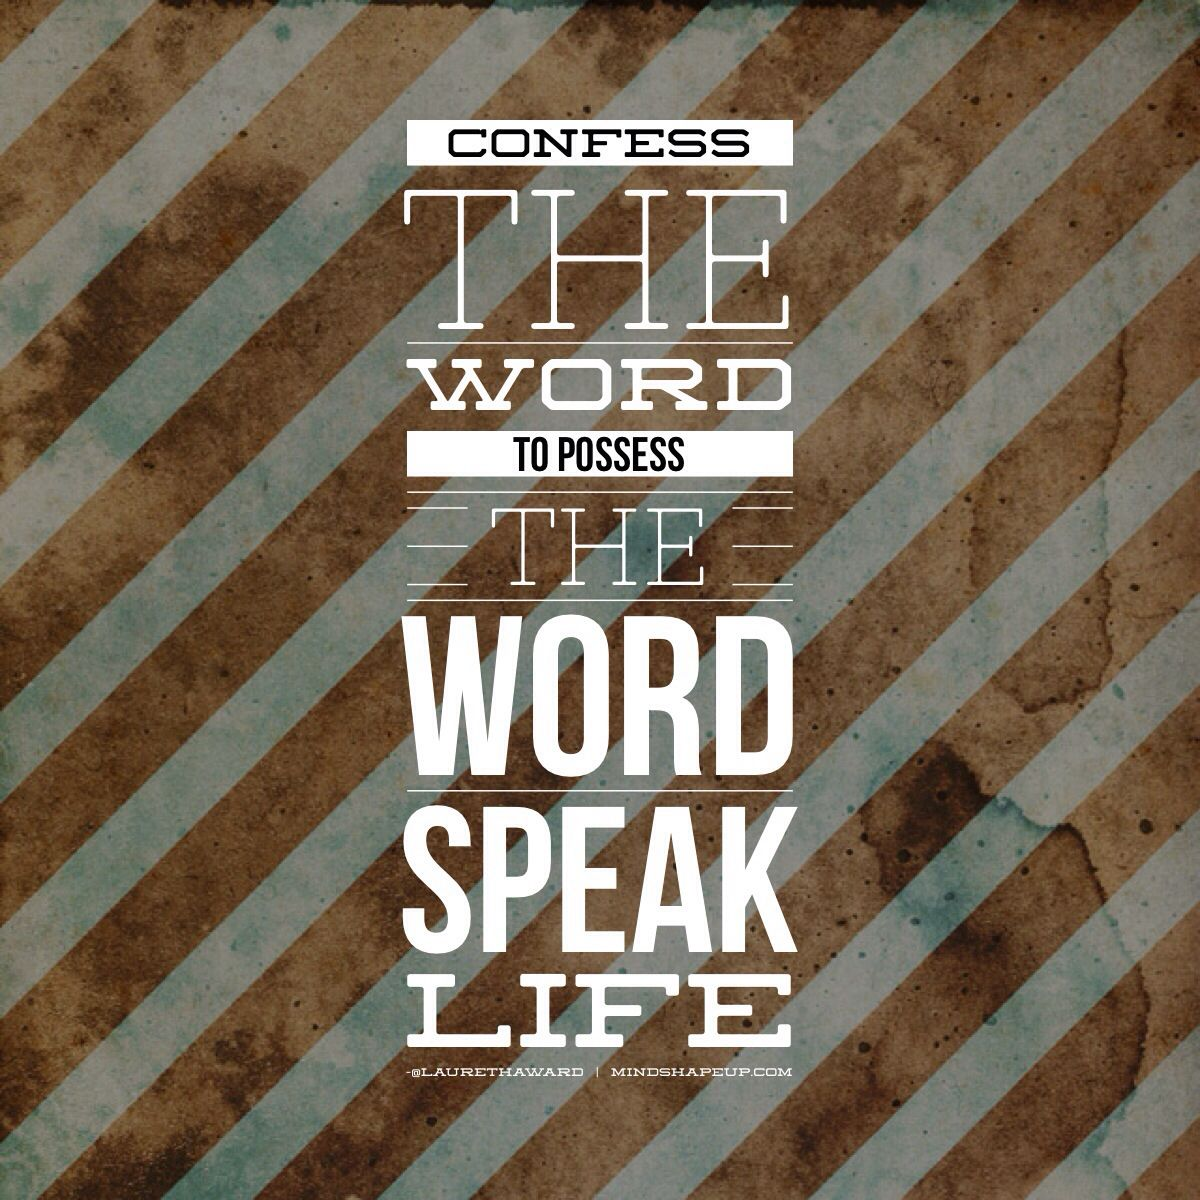 Confess the word to possess the word. Speak life!